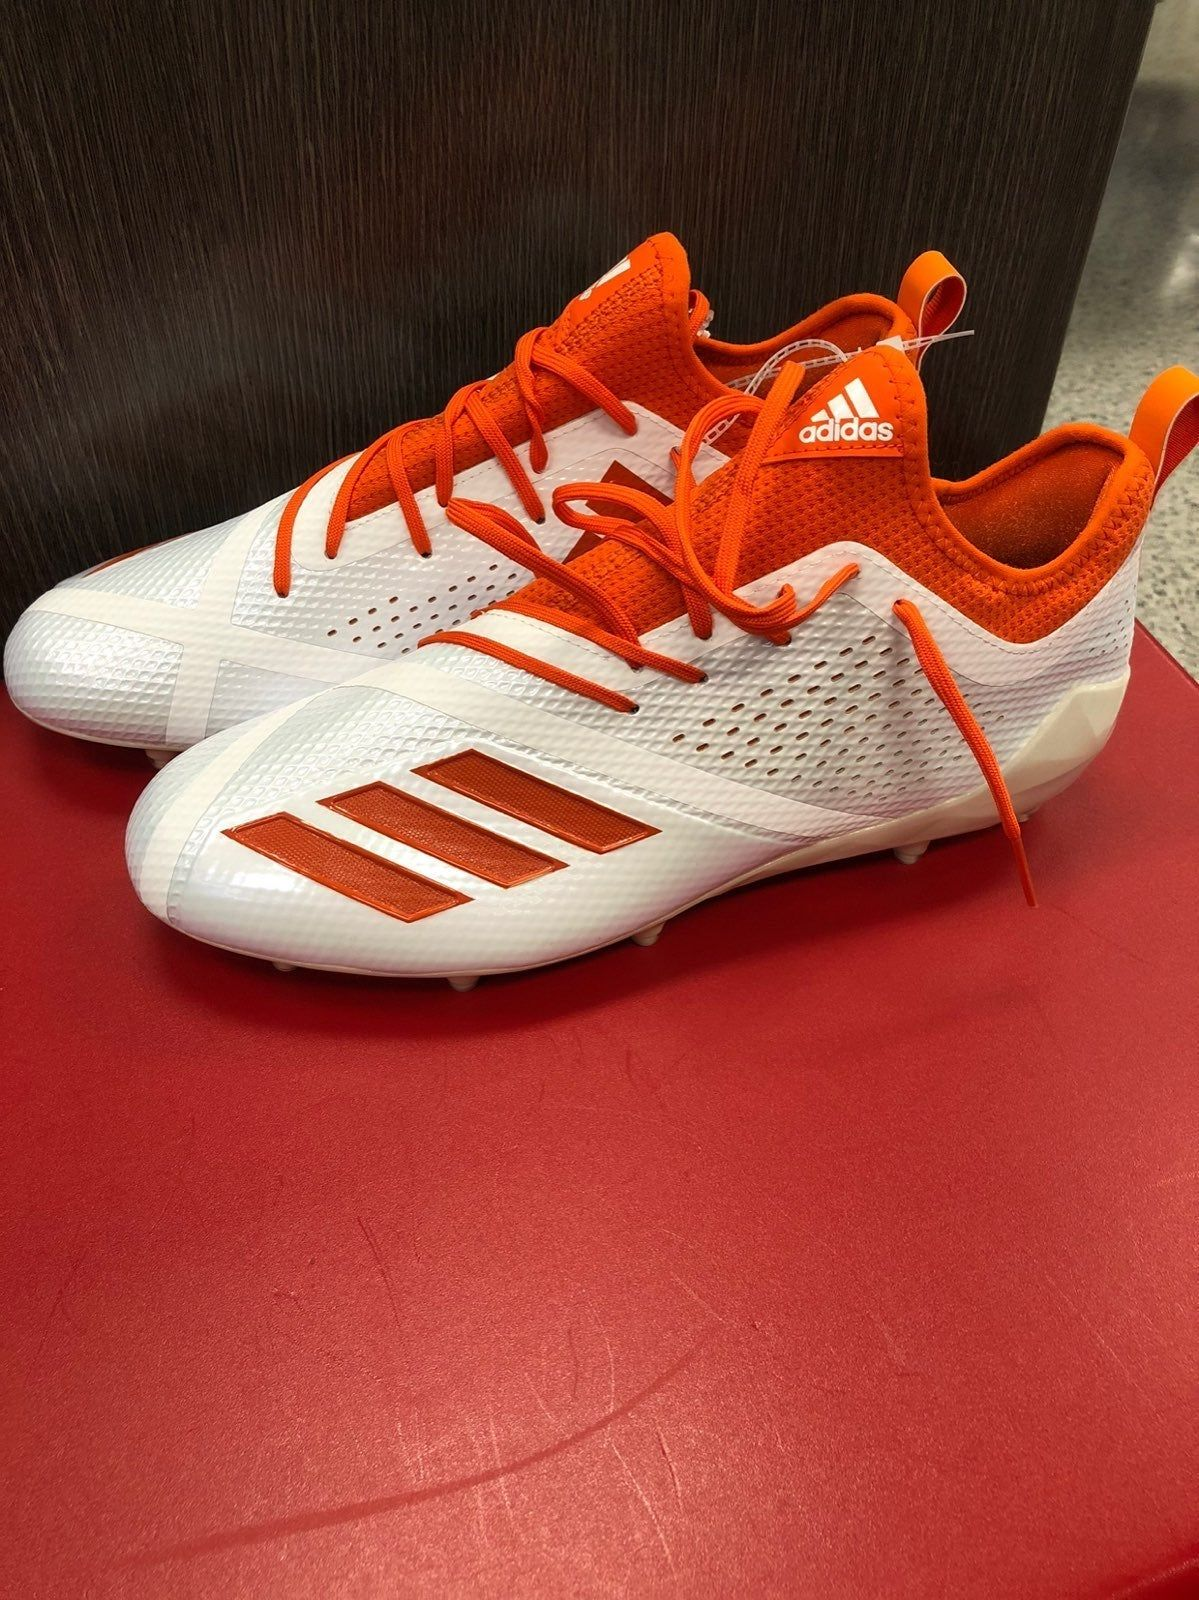 Adidas Adizero 5 Star Cleats White And Orange With Gloss Bottom Brand New Willing To Negotiate Adidas Football Cleats Cool Football Boots Adidas Cleats